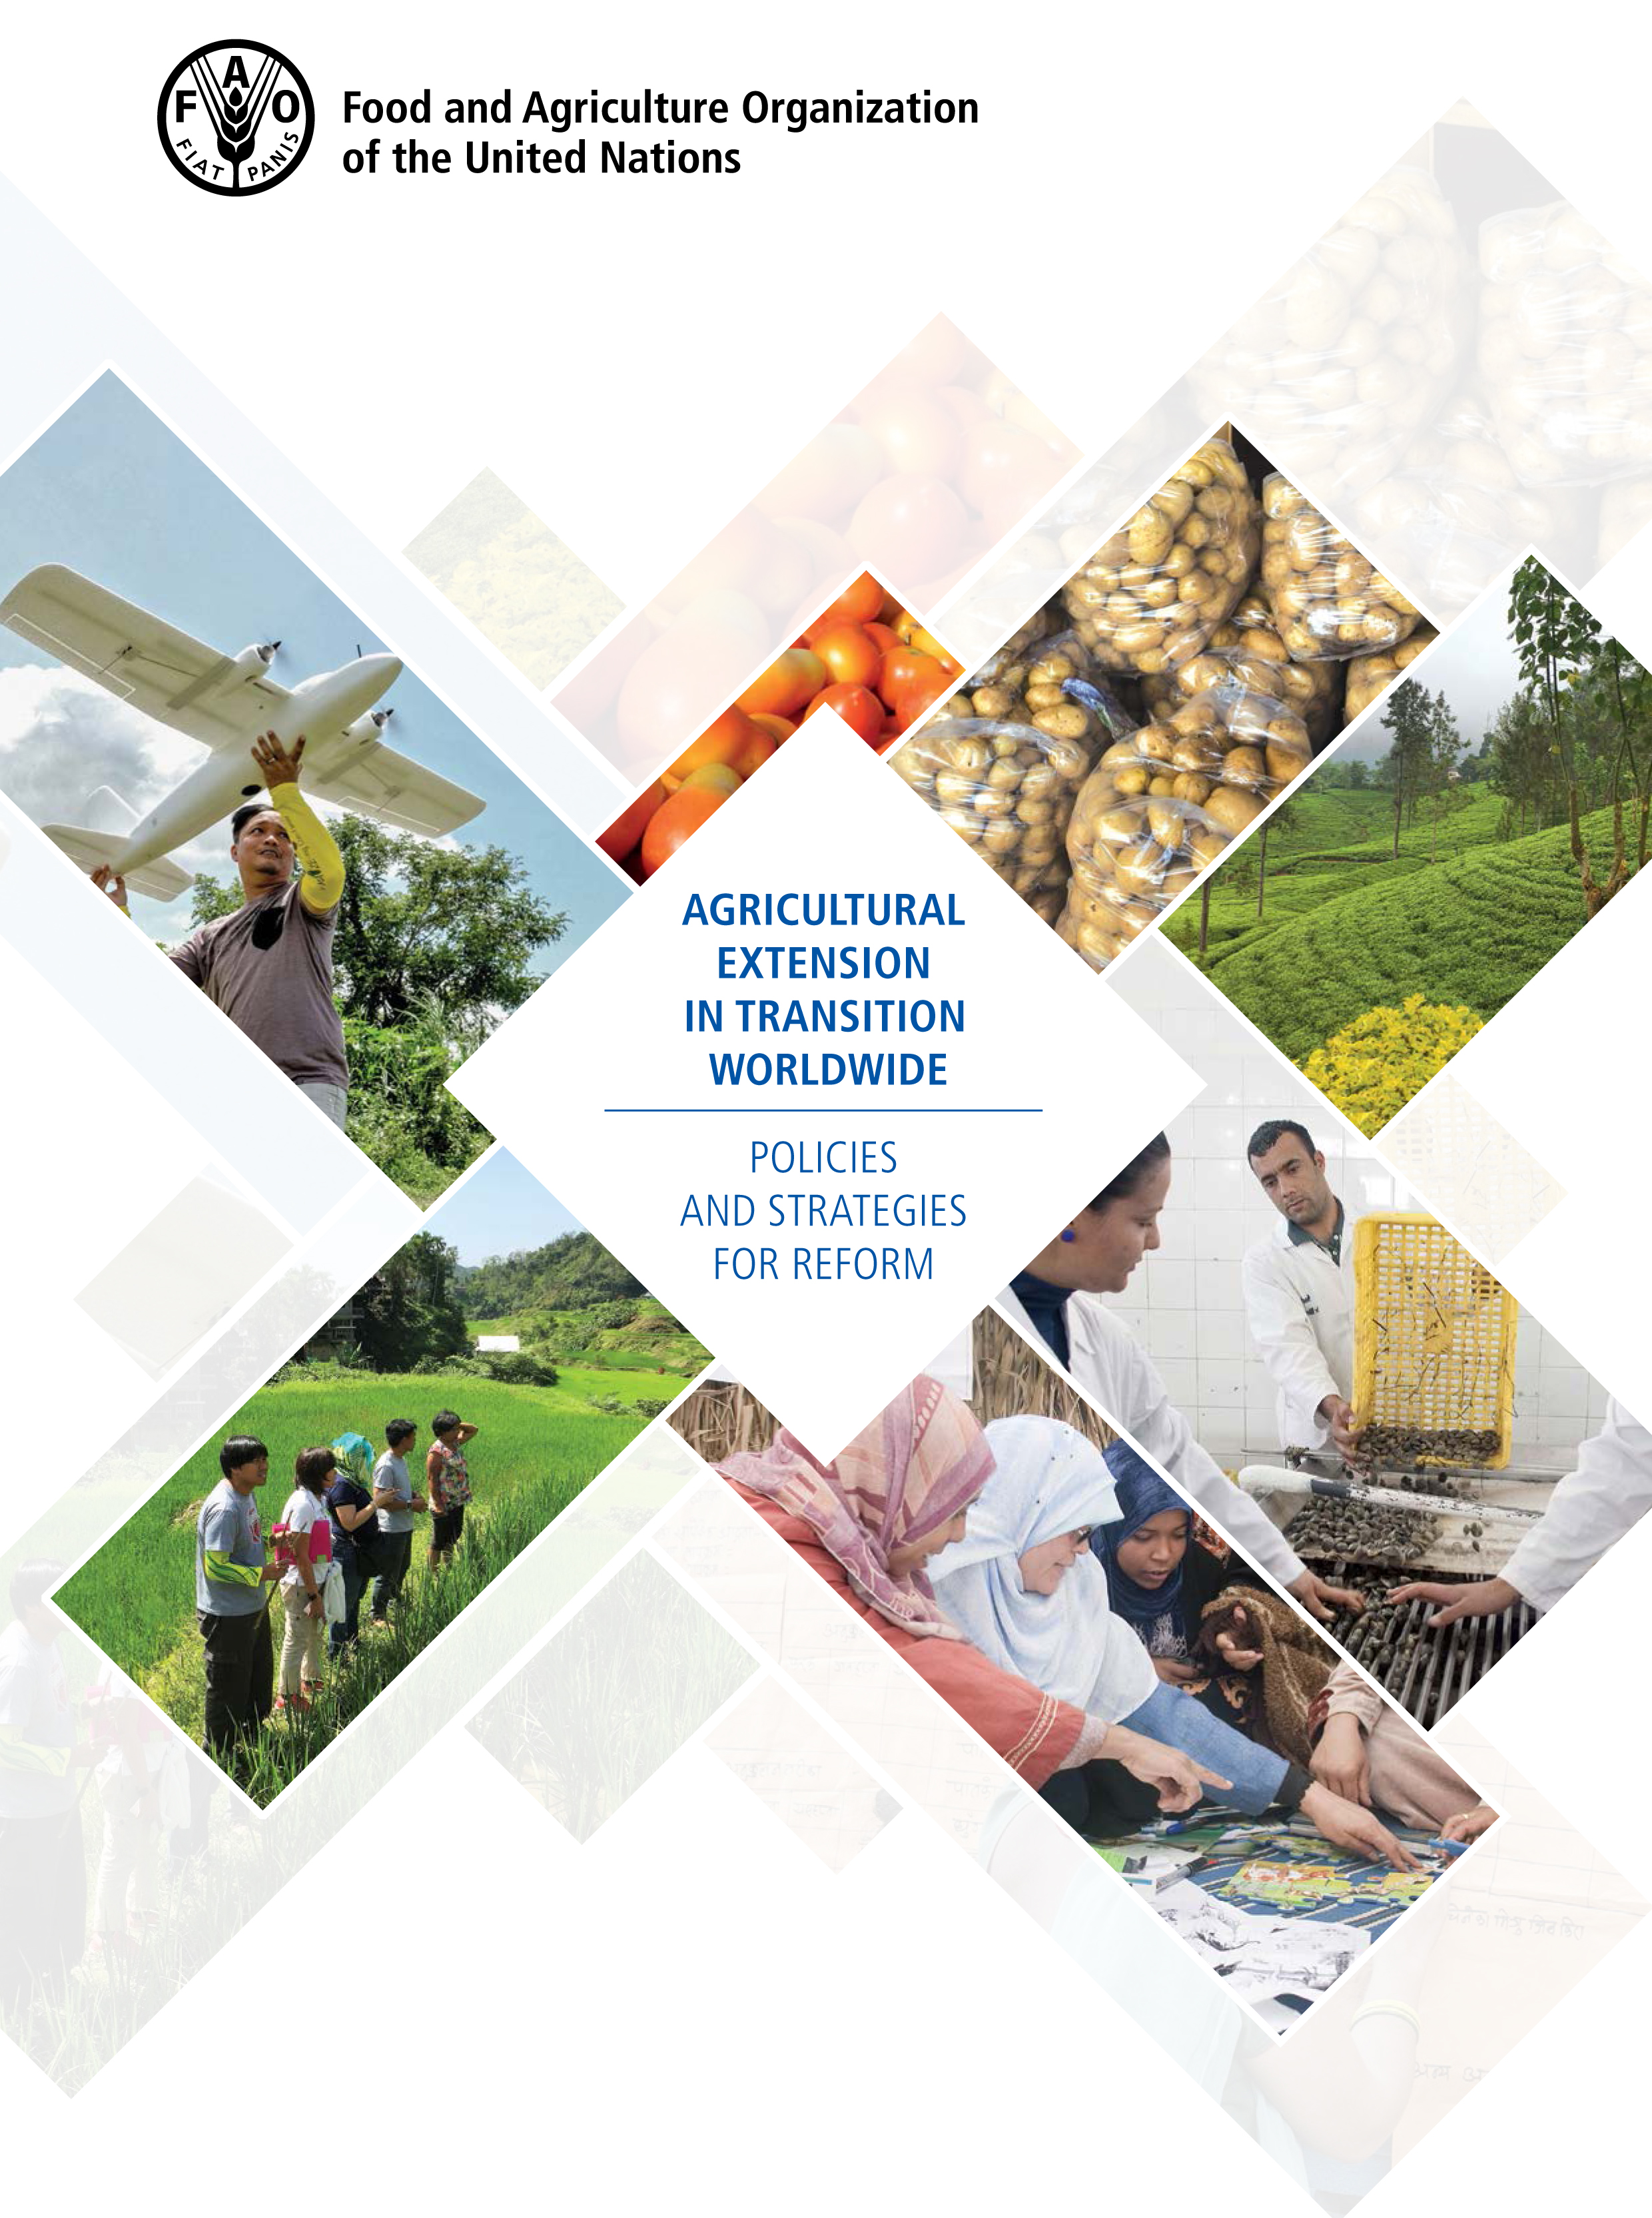 FAO Agricultural Extension inTransition Worldwide Policies and Strategies for Reform